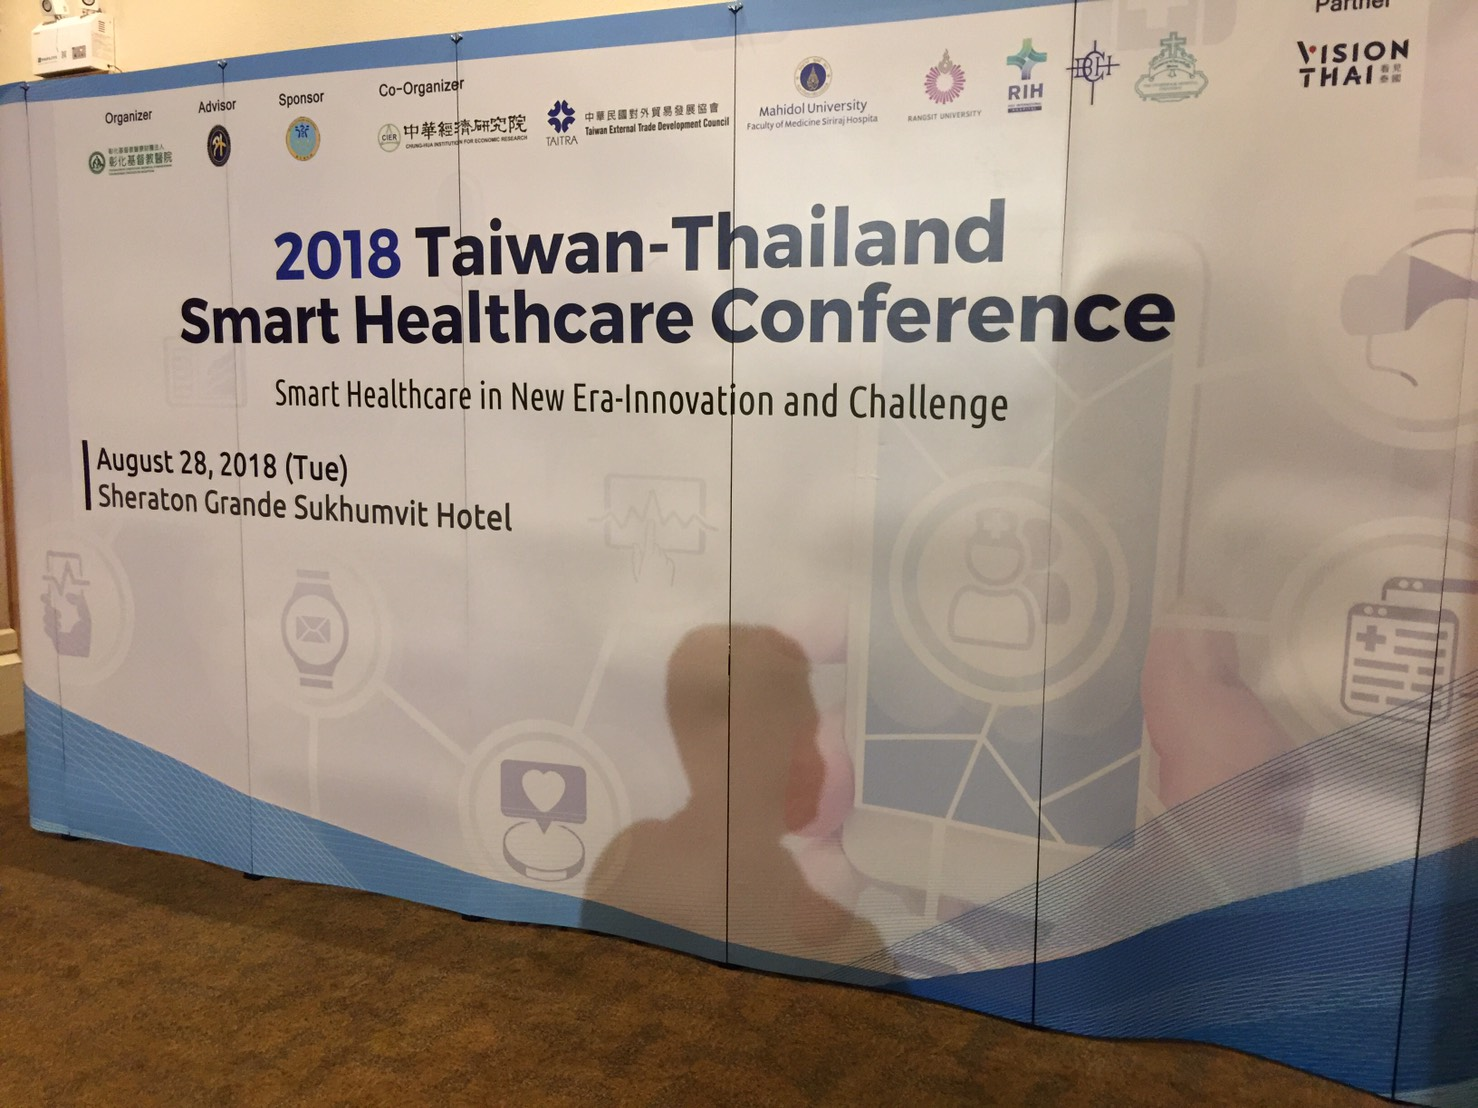 2018 Taiwan-Thailand Smart Healthcare Conference